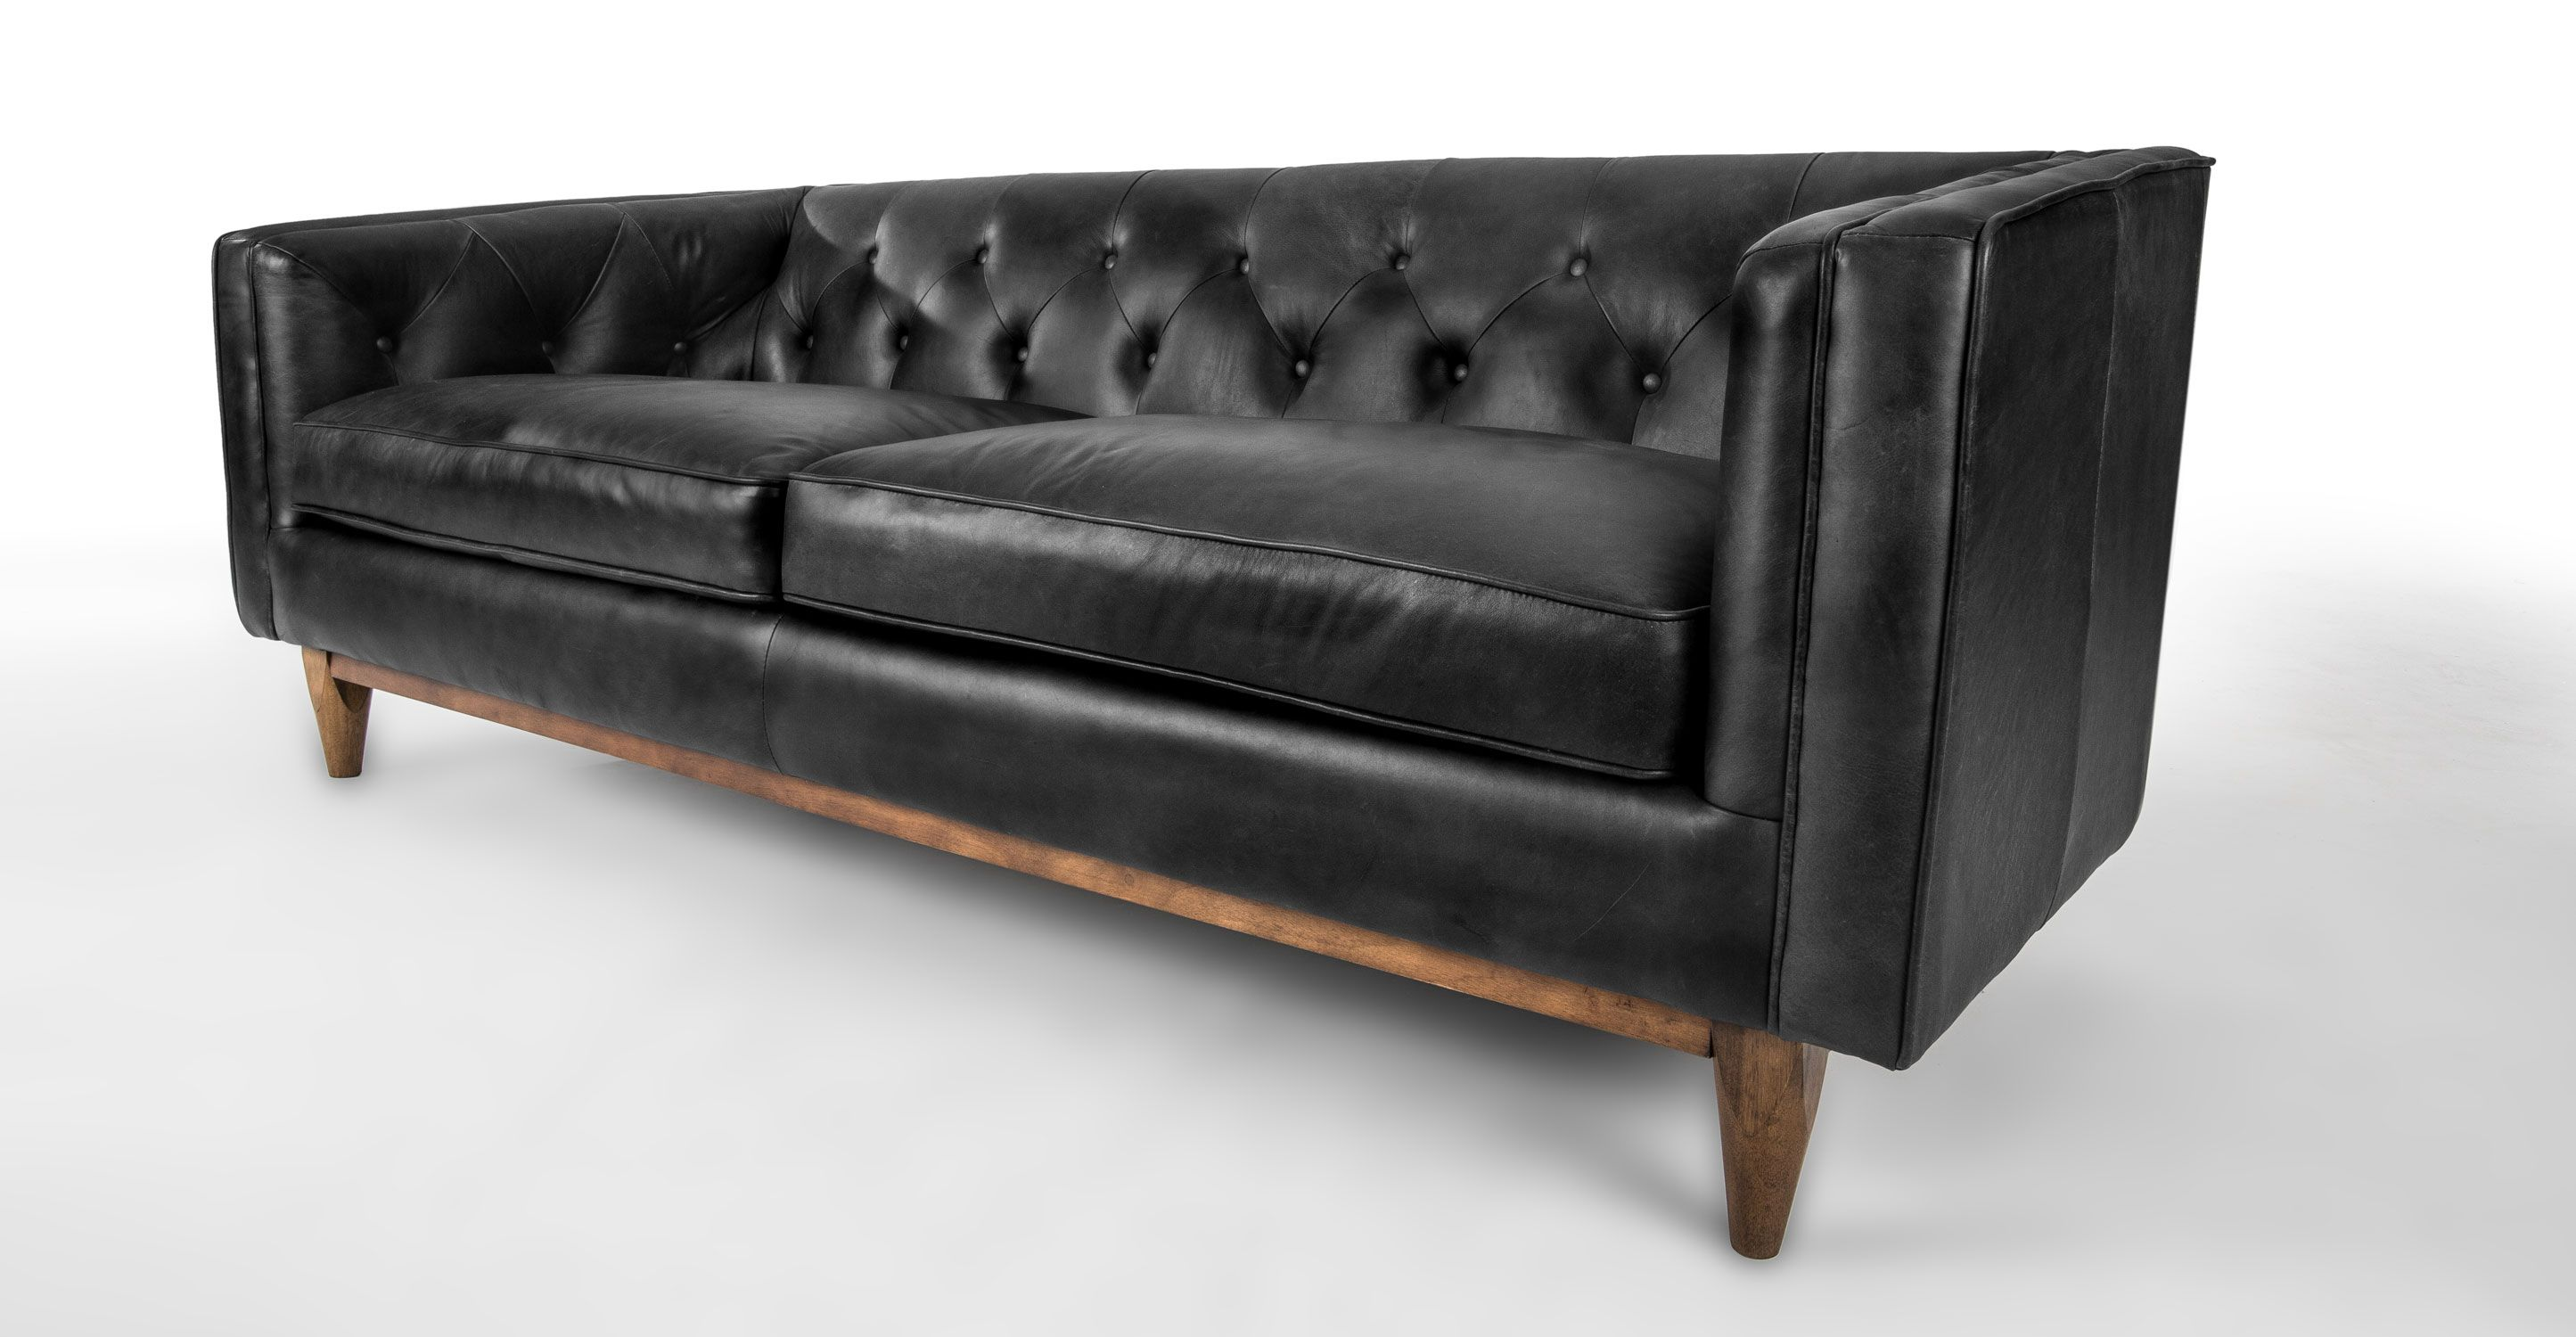 Ralph Lauren Leder Sessel Chrome Black Leather Sofa In Walnut Wood Finish Article Alcott Modern